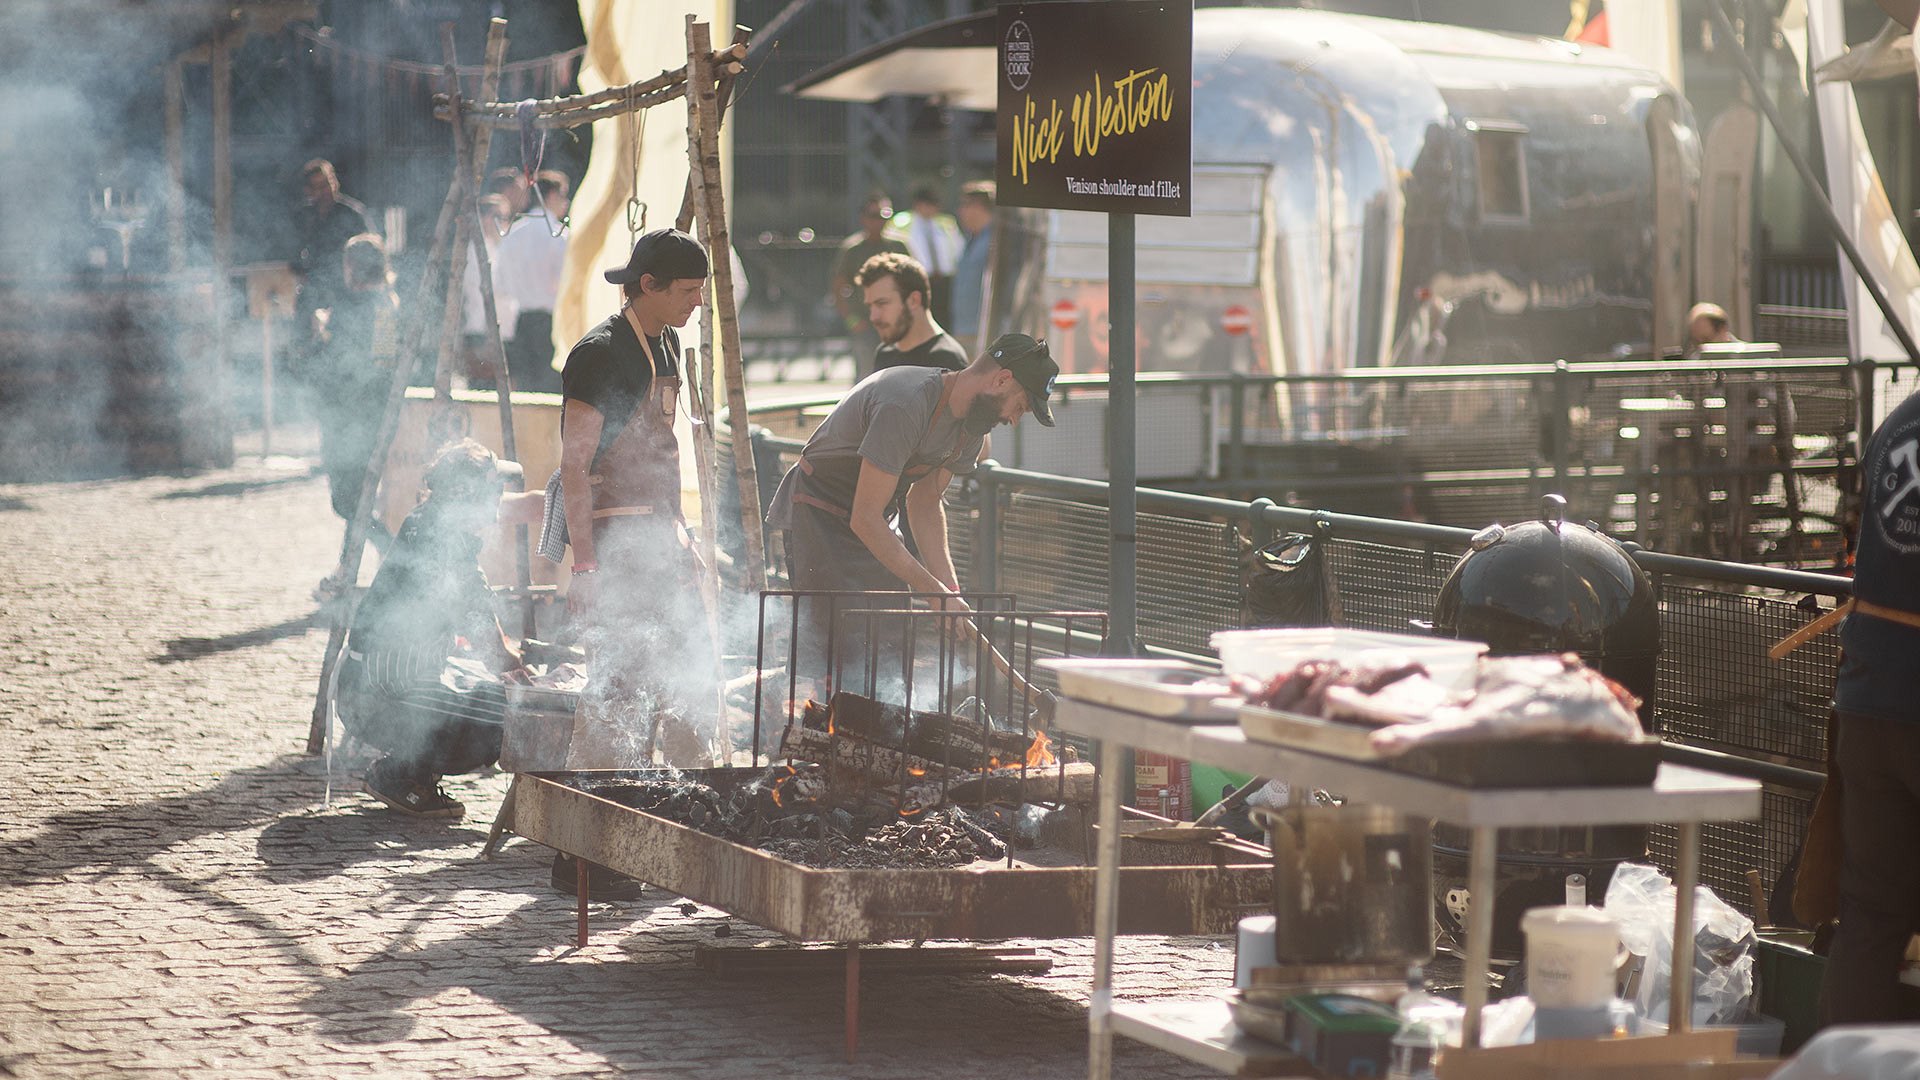 Nick Weston manned a grill at last year's Meatopia